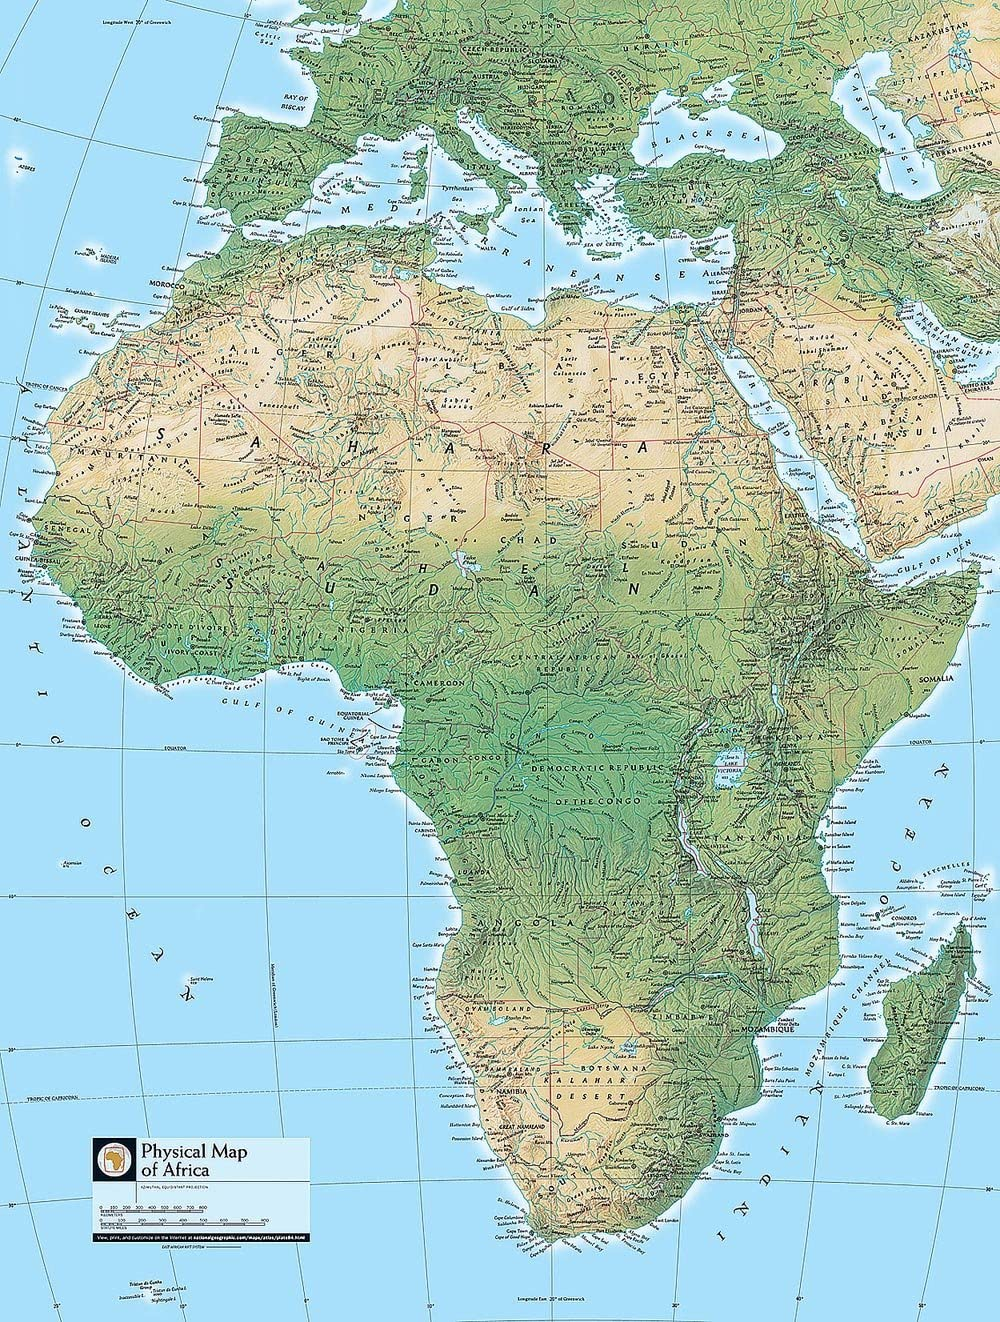 Geographic Map Of Africa Physical Map of Africa Wallpaper Wall Mural   Self Adhesive